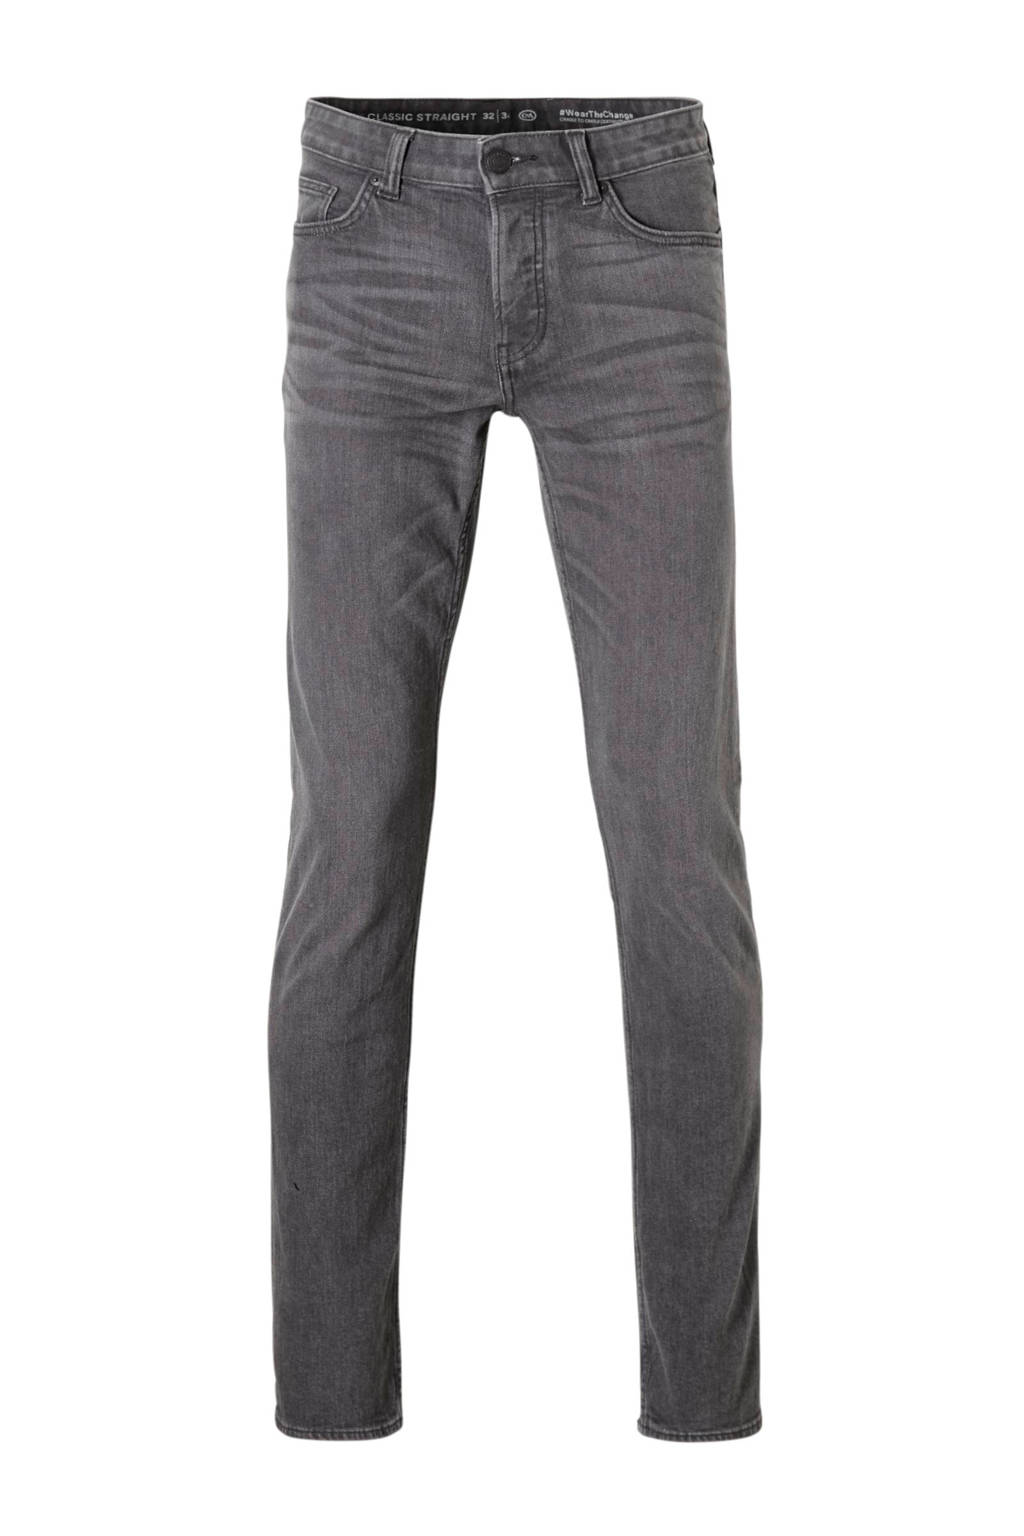 C&A The Denim straight fit jeans grijs, Grijs